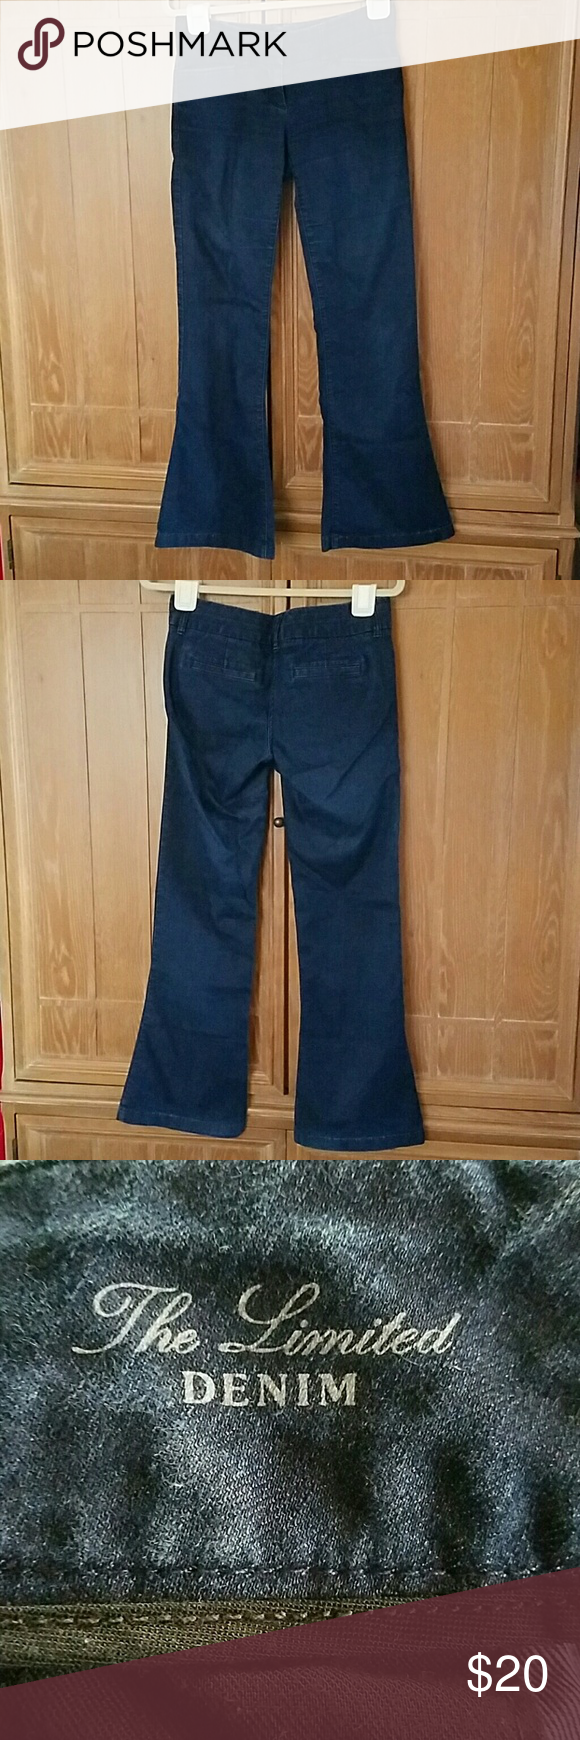 The limited denim jeans Boot cut limited jeans. 4 pockets and belt loops. 79% cotton 21% elasrarell-p. These jeans have a double slide and button closure. The Limited Jeans Boot Cut